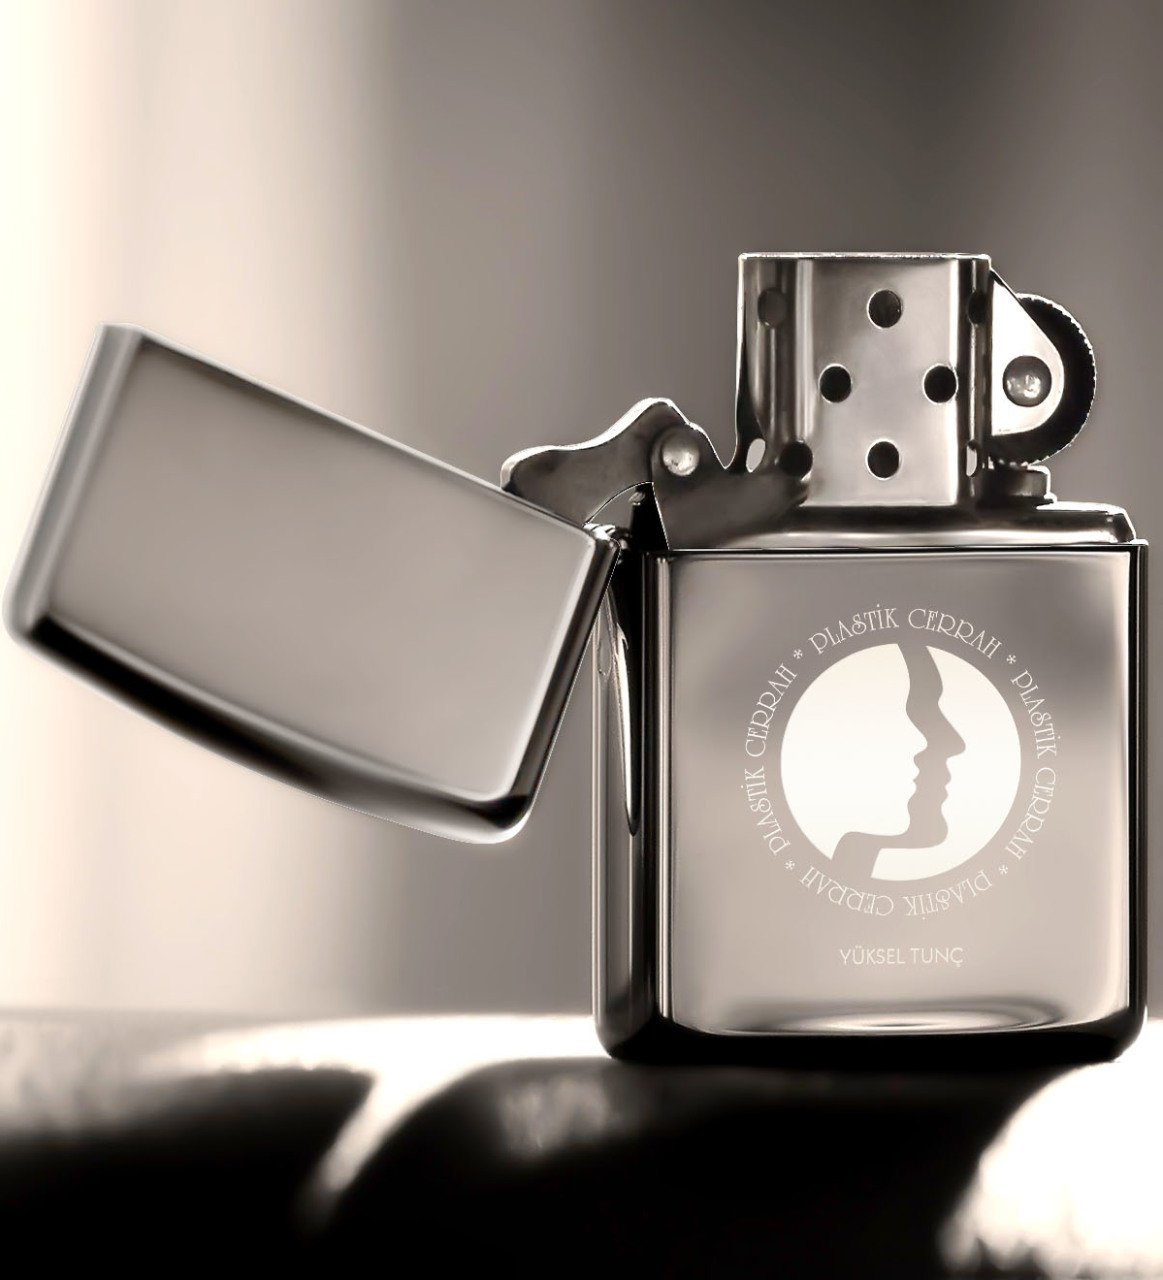 Personalized Plastic Surgeon Gasoline Silver Gray Metal Lighter-1 image